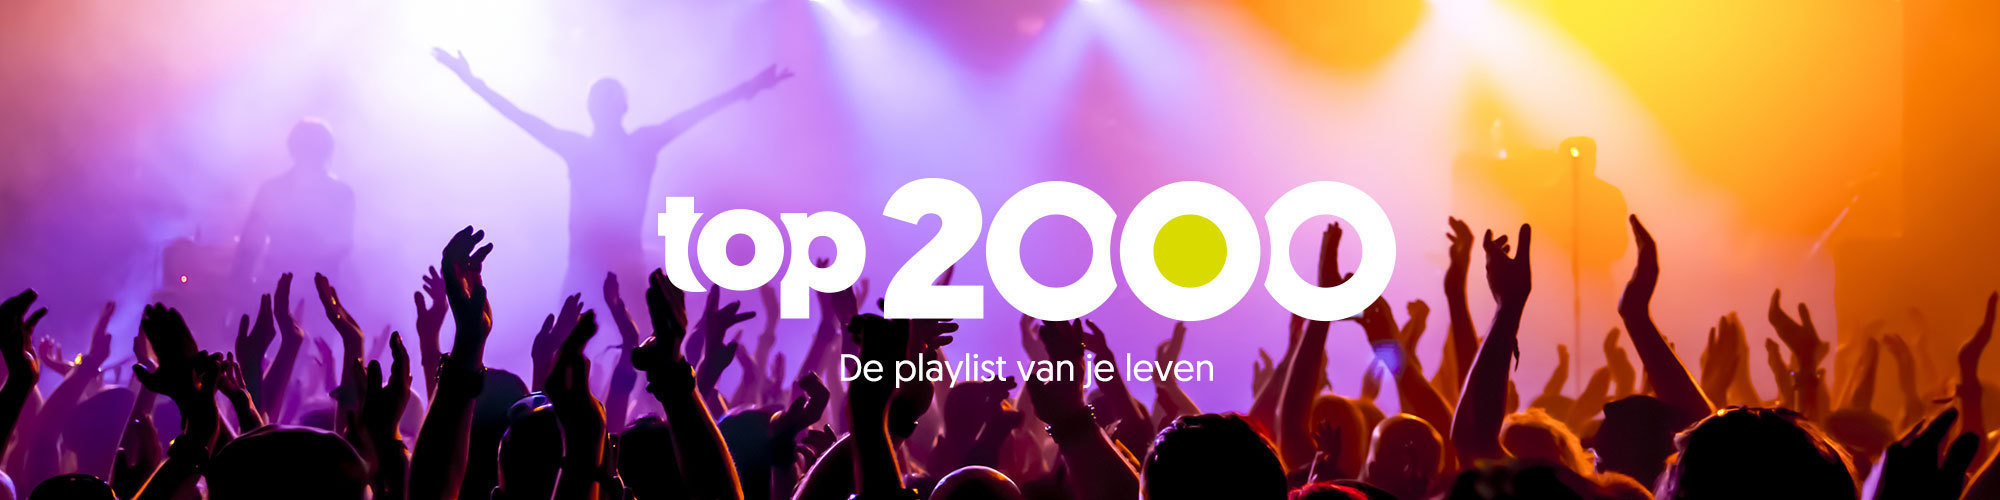 Joe carrousel top2000 finaal playlistvanjeleven 1